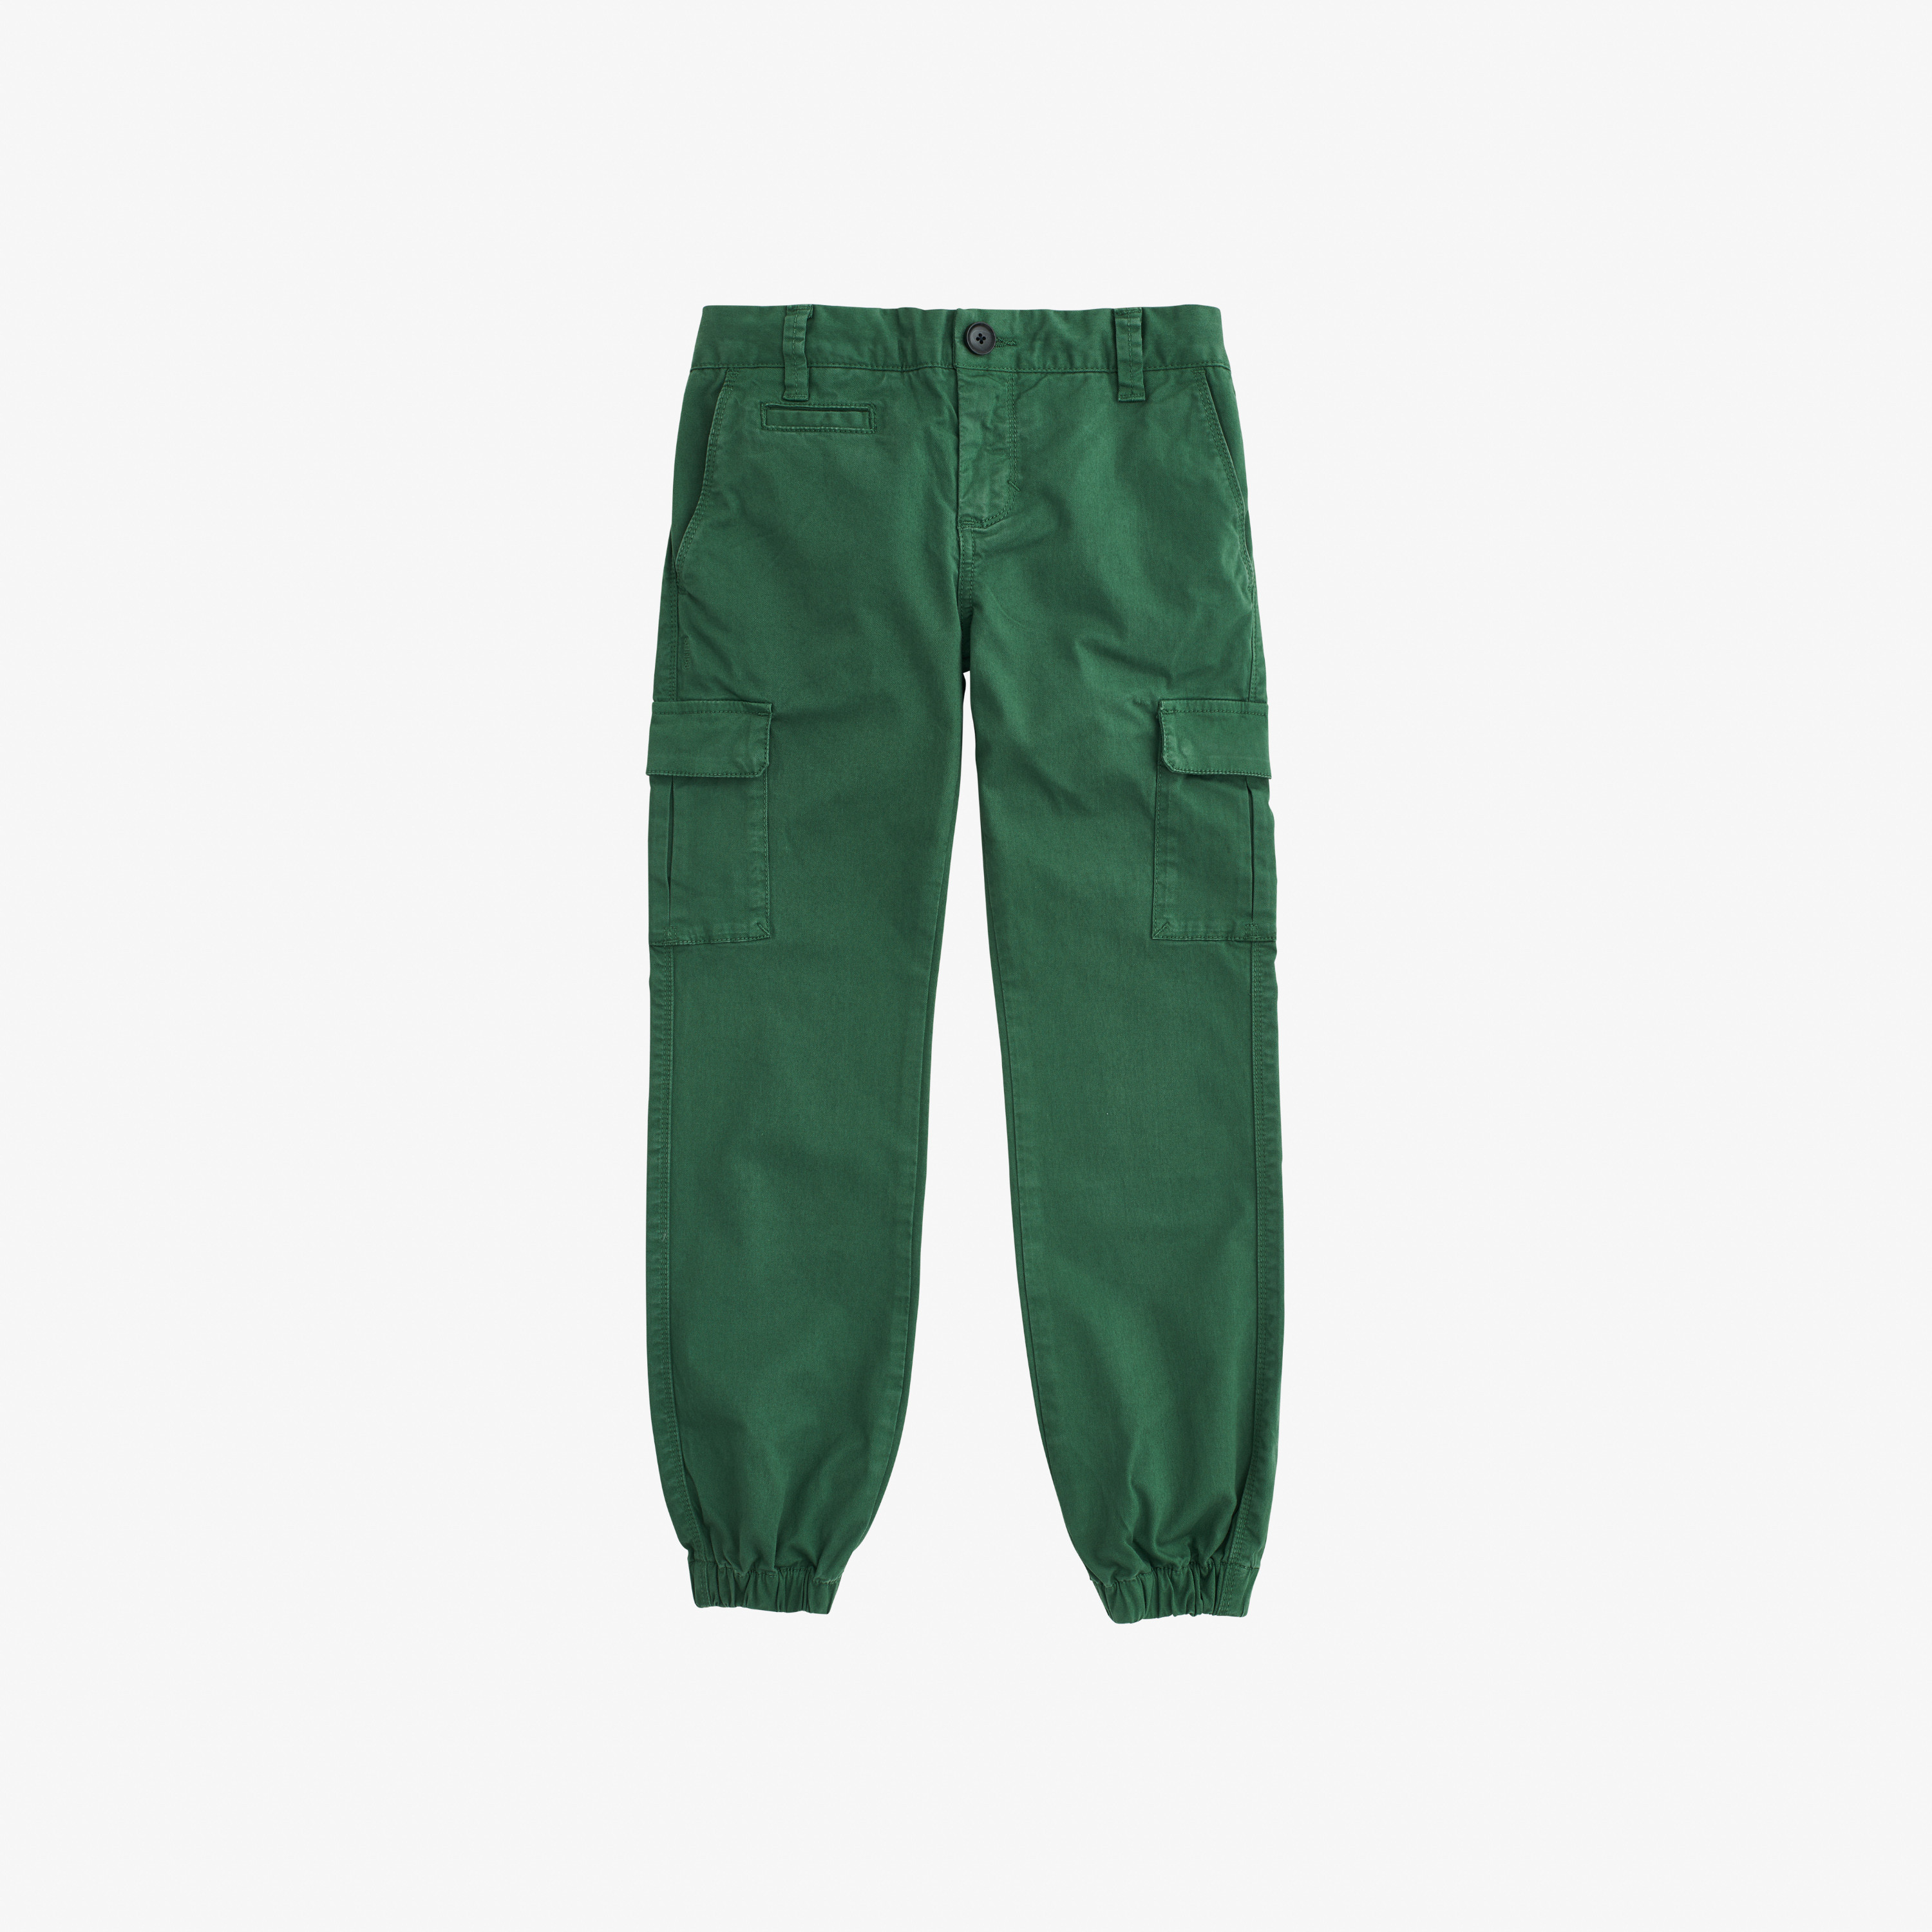 BOY'S MILITARY PANT ELASTIC BOTTOM SAGE GREEN